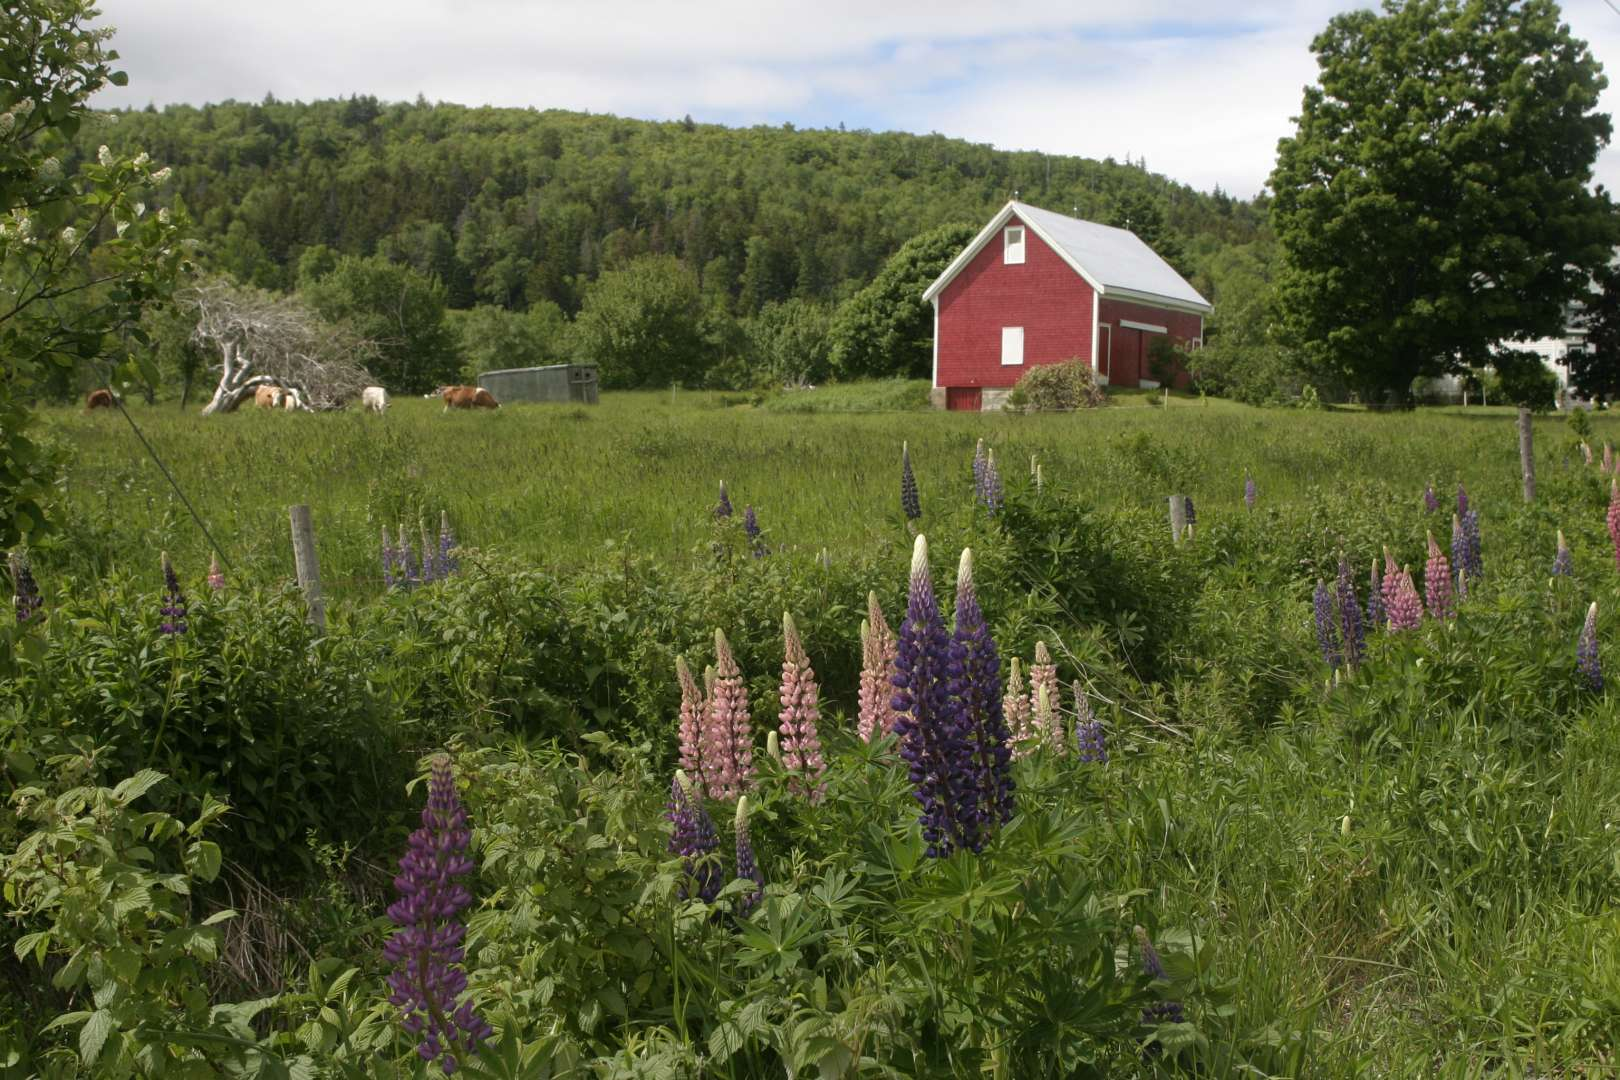 Lupins in bloom are seem in thei images near Blomidon Park in Nova Scotia, Annapolis Valley, an area rich in farming.